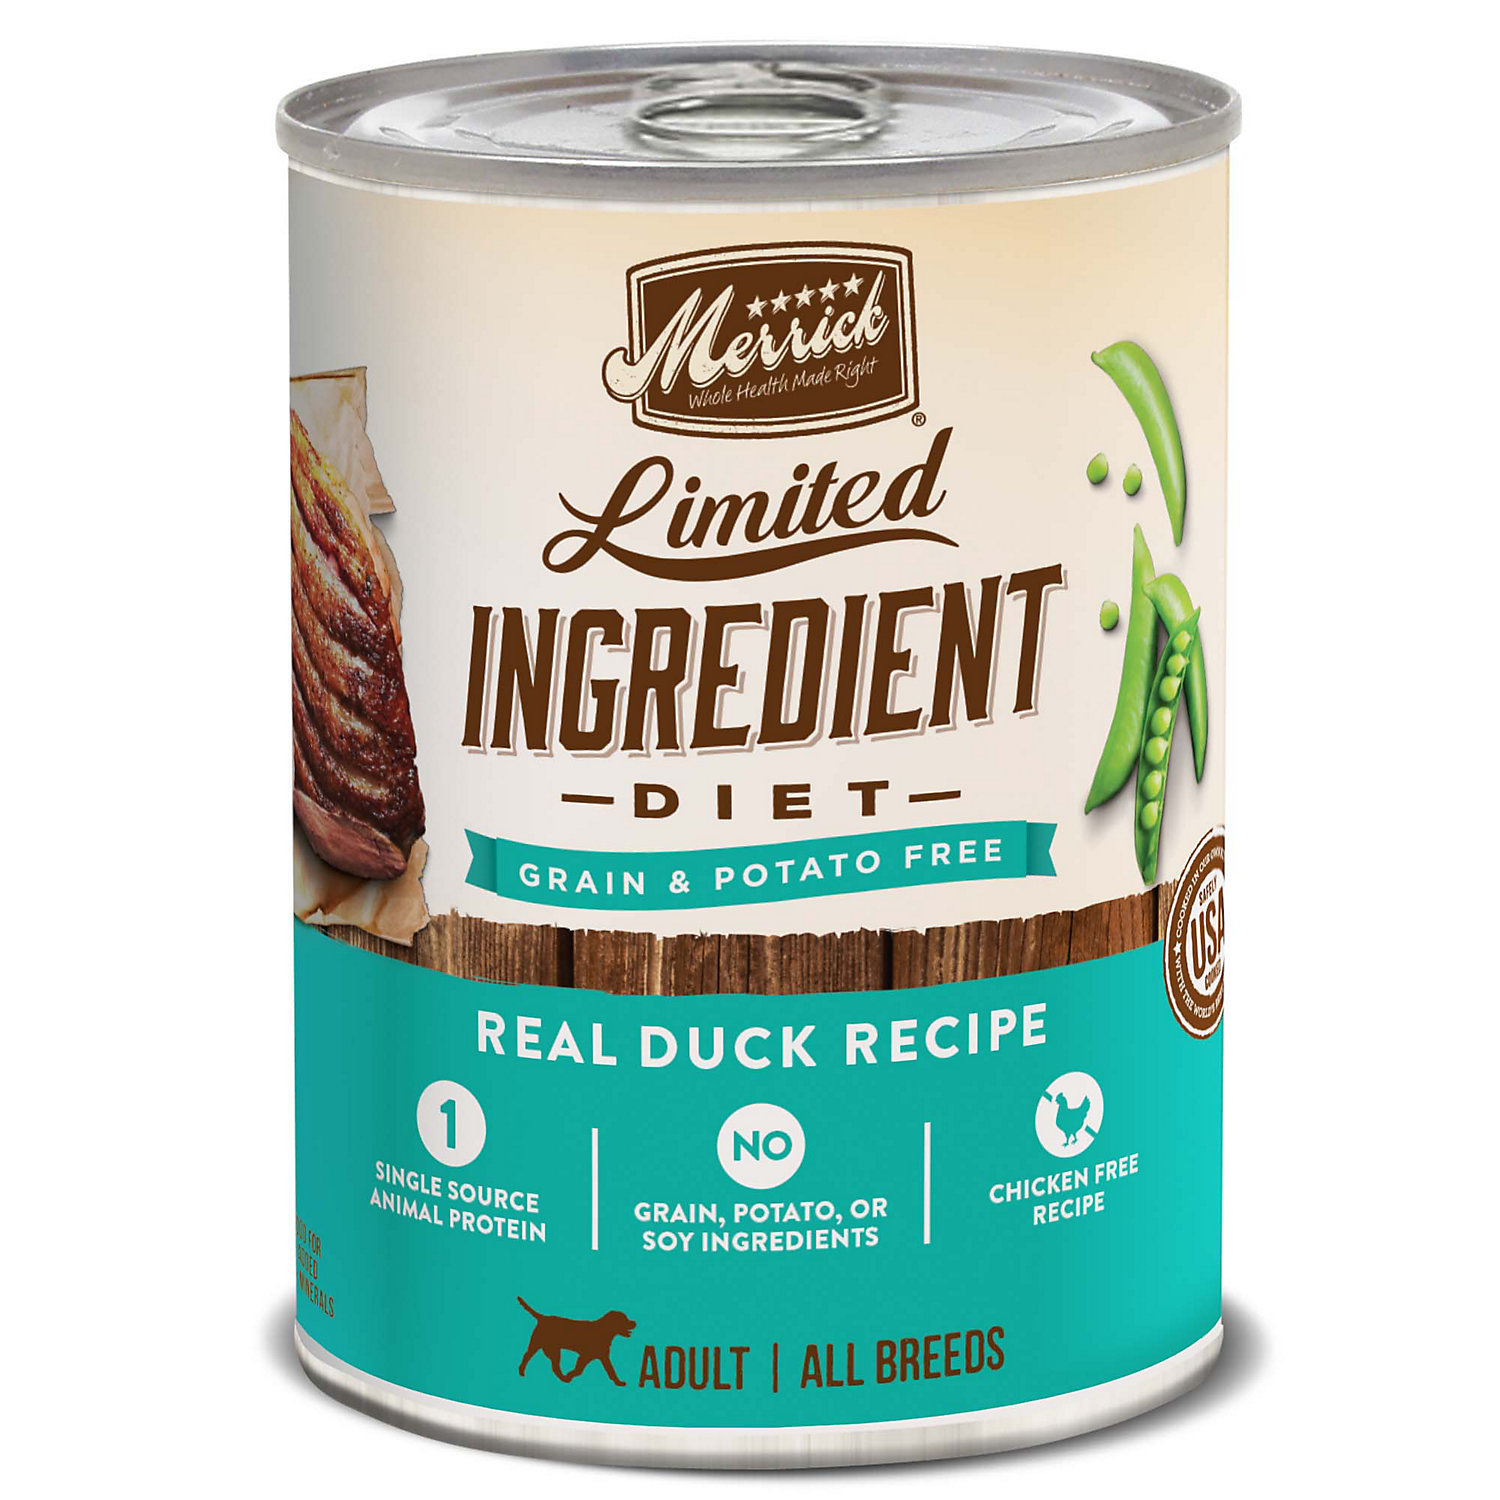 Merrick Limited Ingredient Diet Real Duck GRAIN & POTATO FREE Recipe Dog Food, 12.7 oz., Case of 12 (2/17) (A.J4)